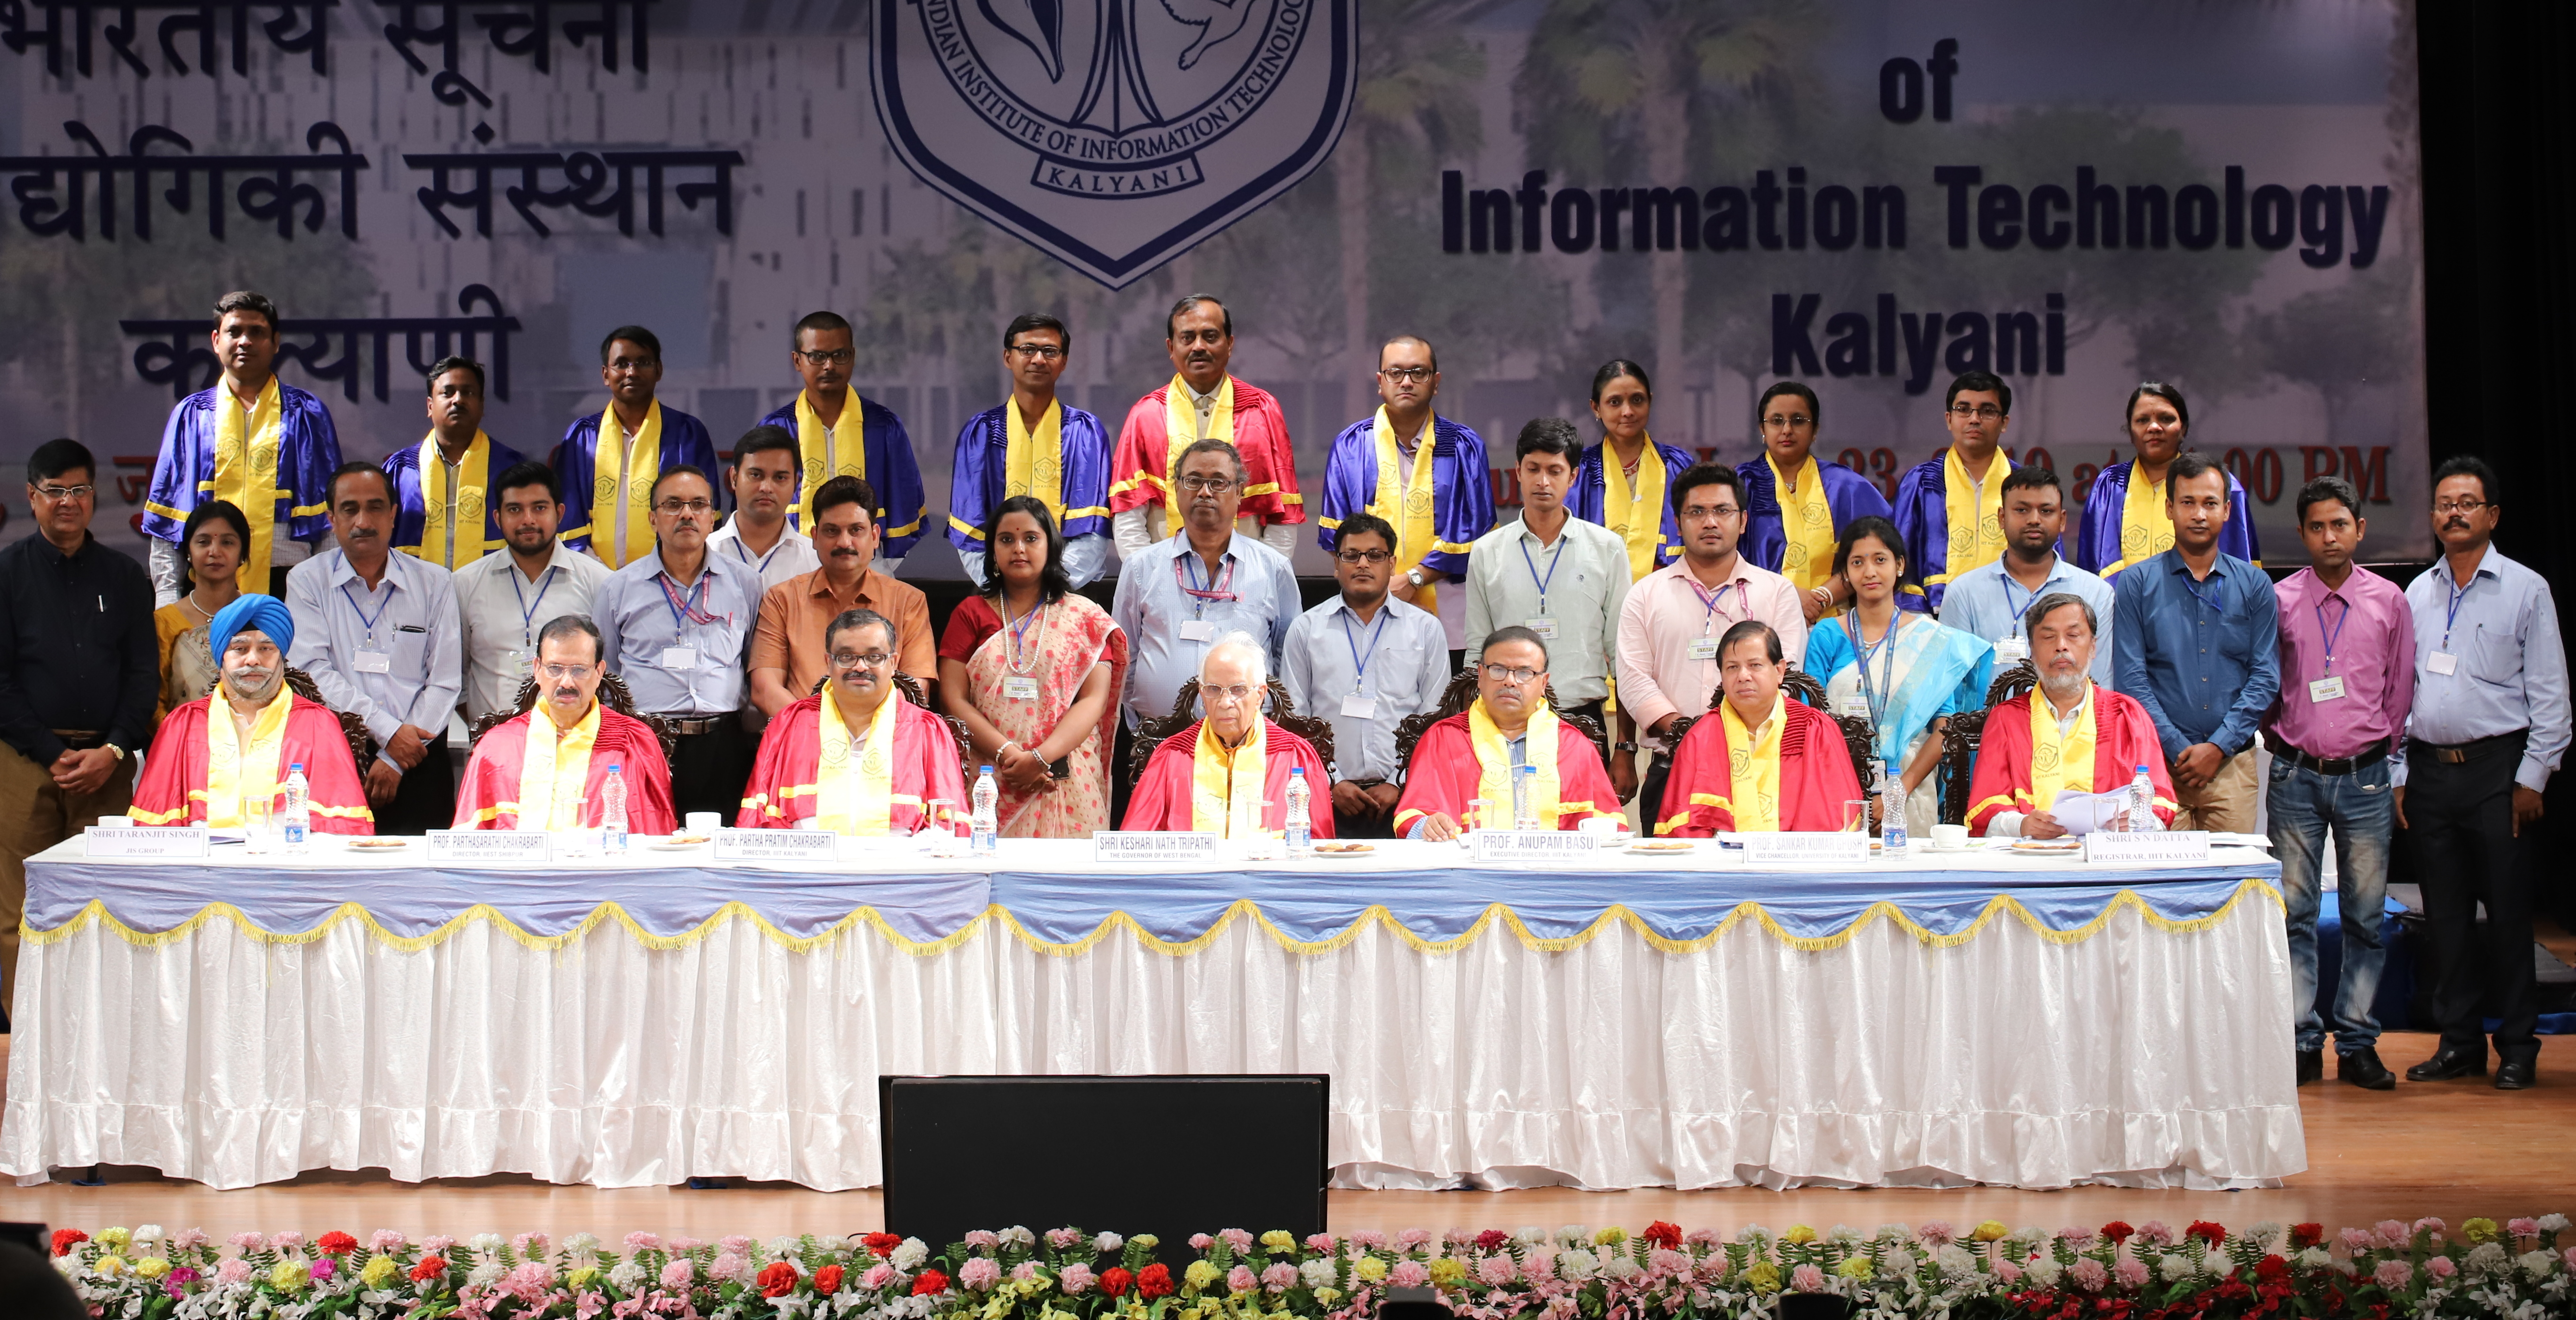 IIIT Kalyani First Convocation